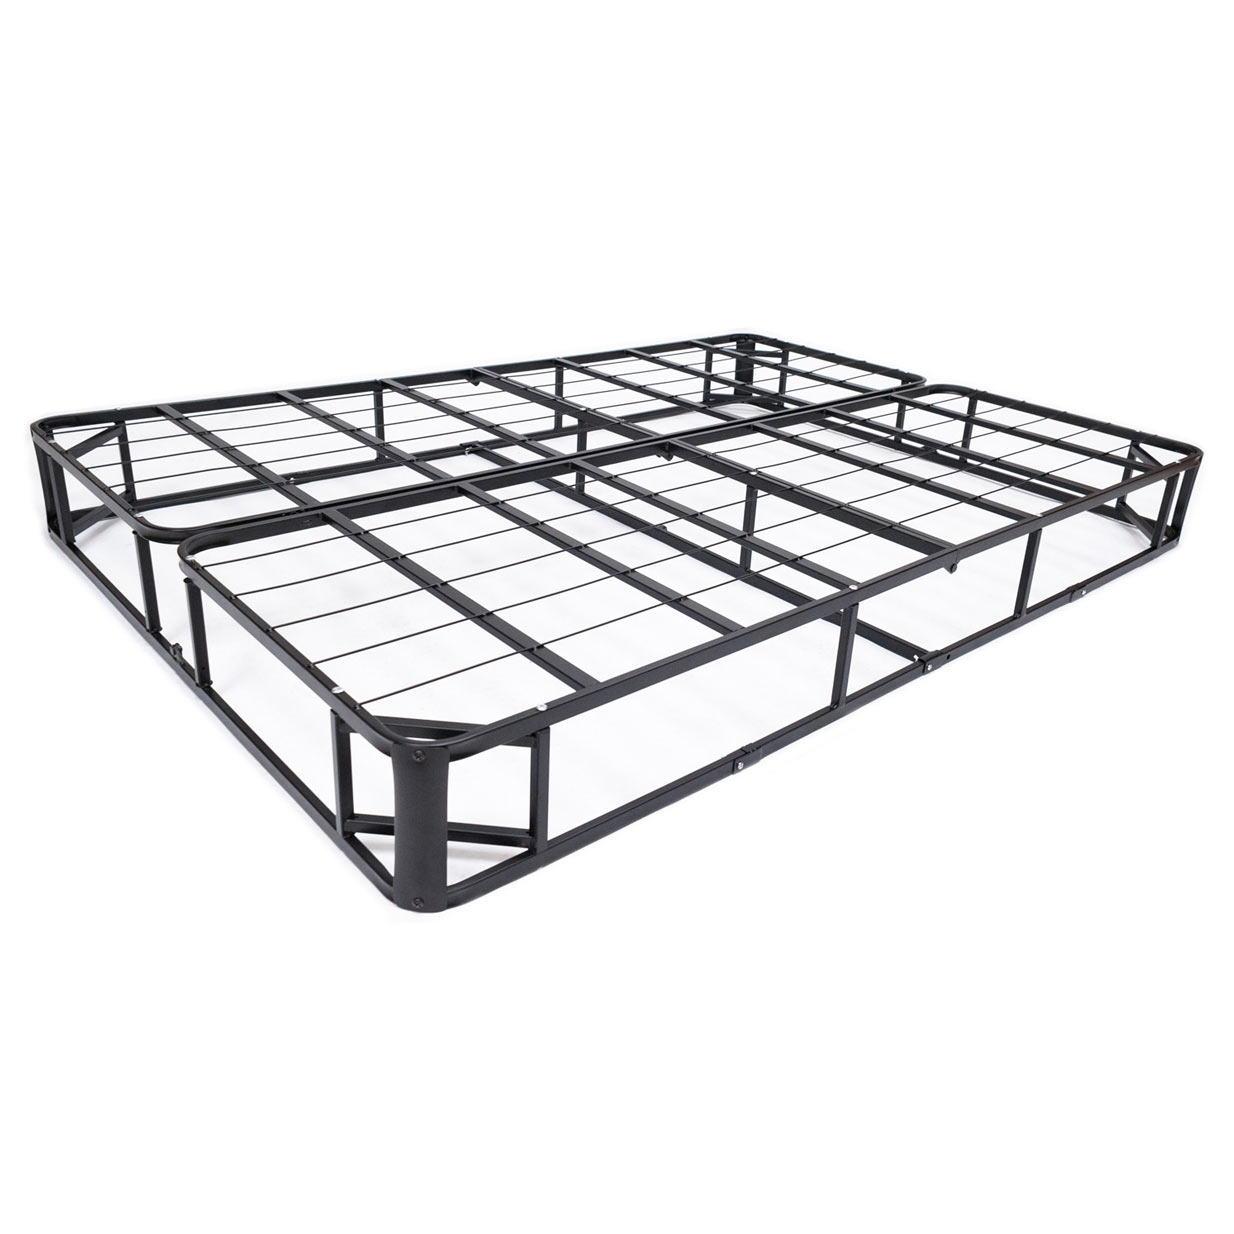 king size metal box spring mattress foundation with cover